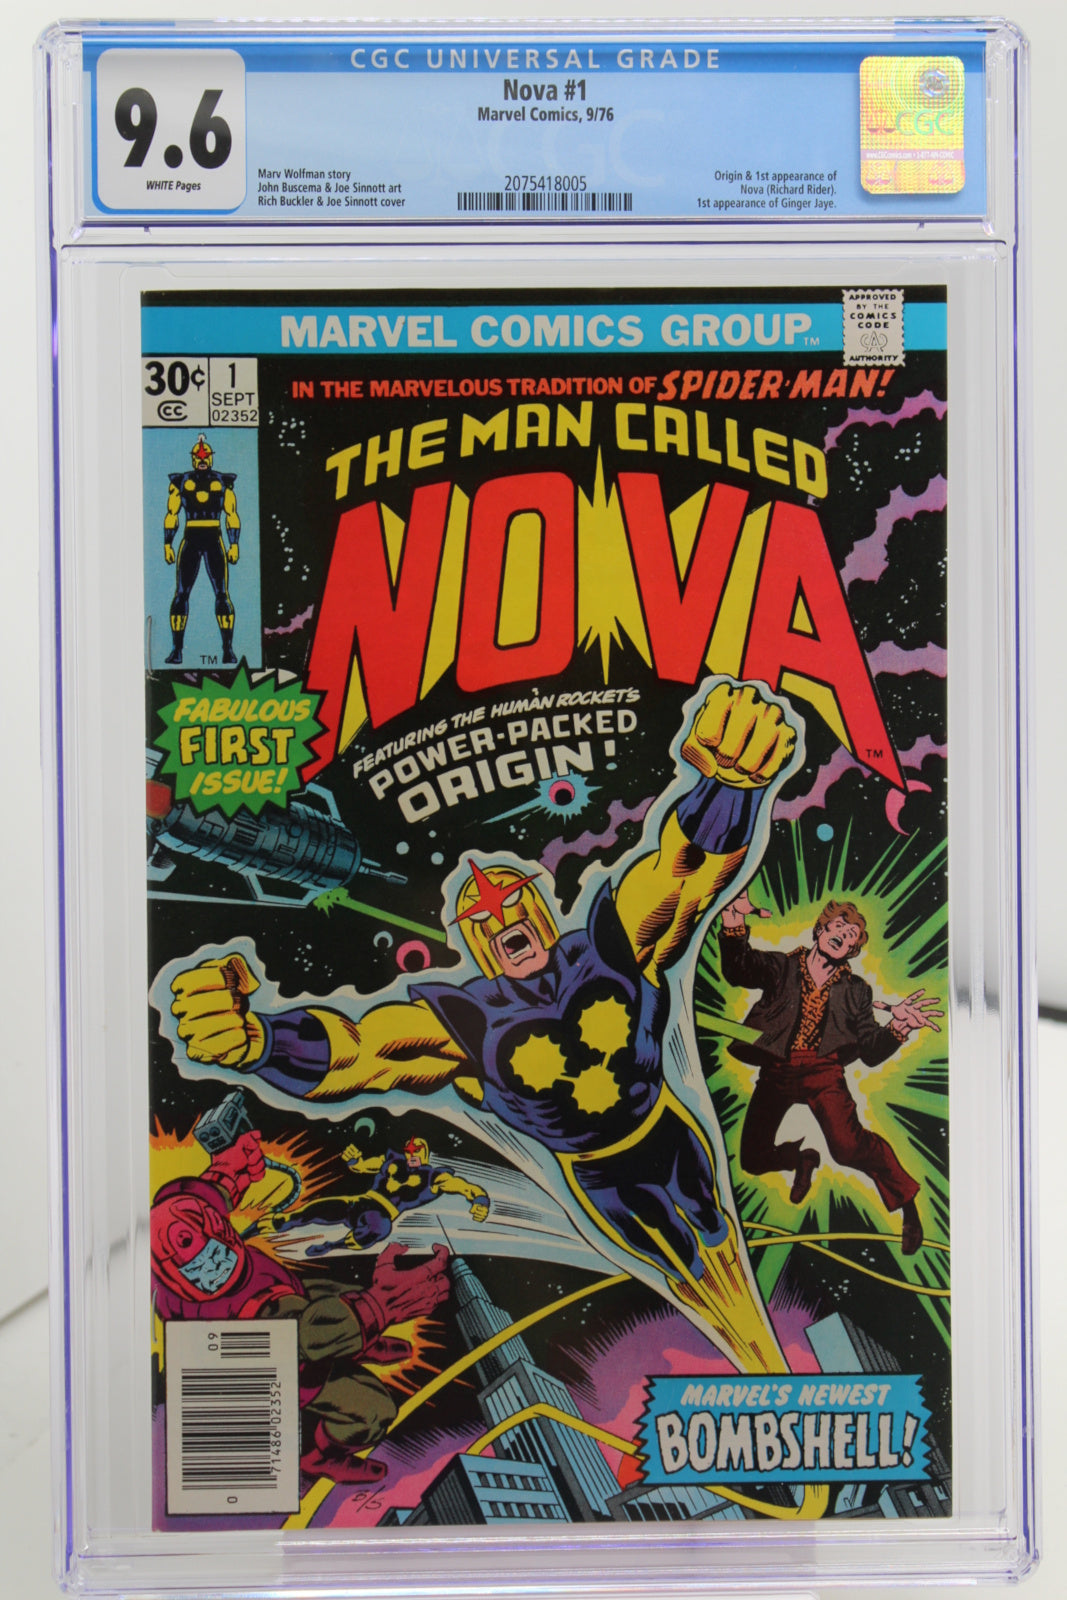 Nova #1 - International Comic Exchange